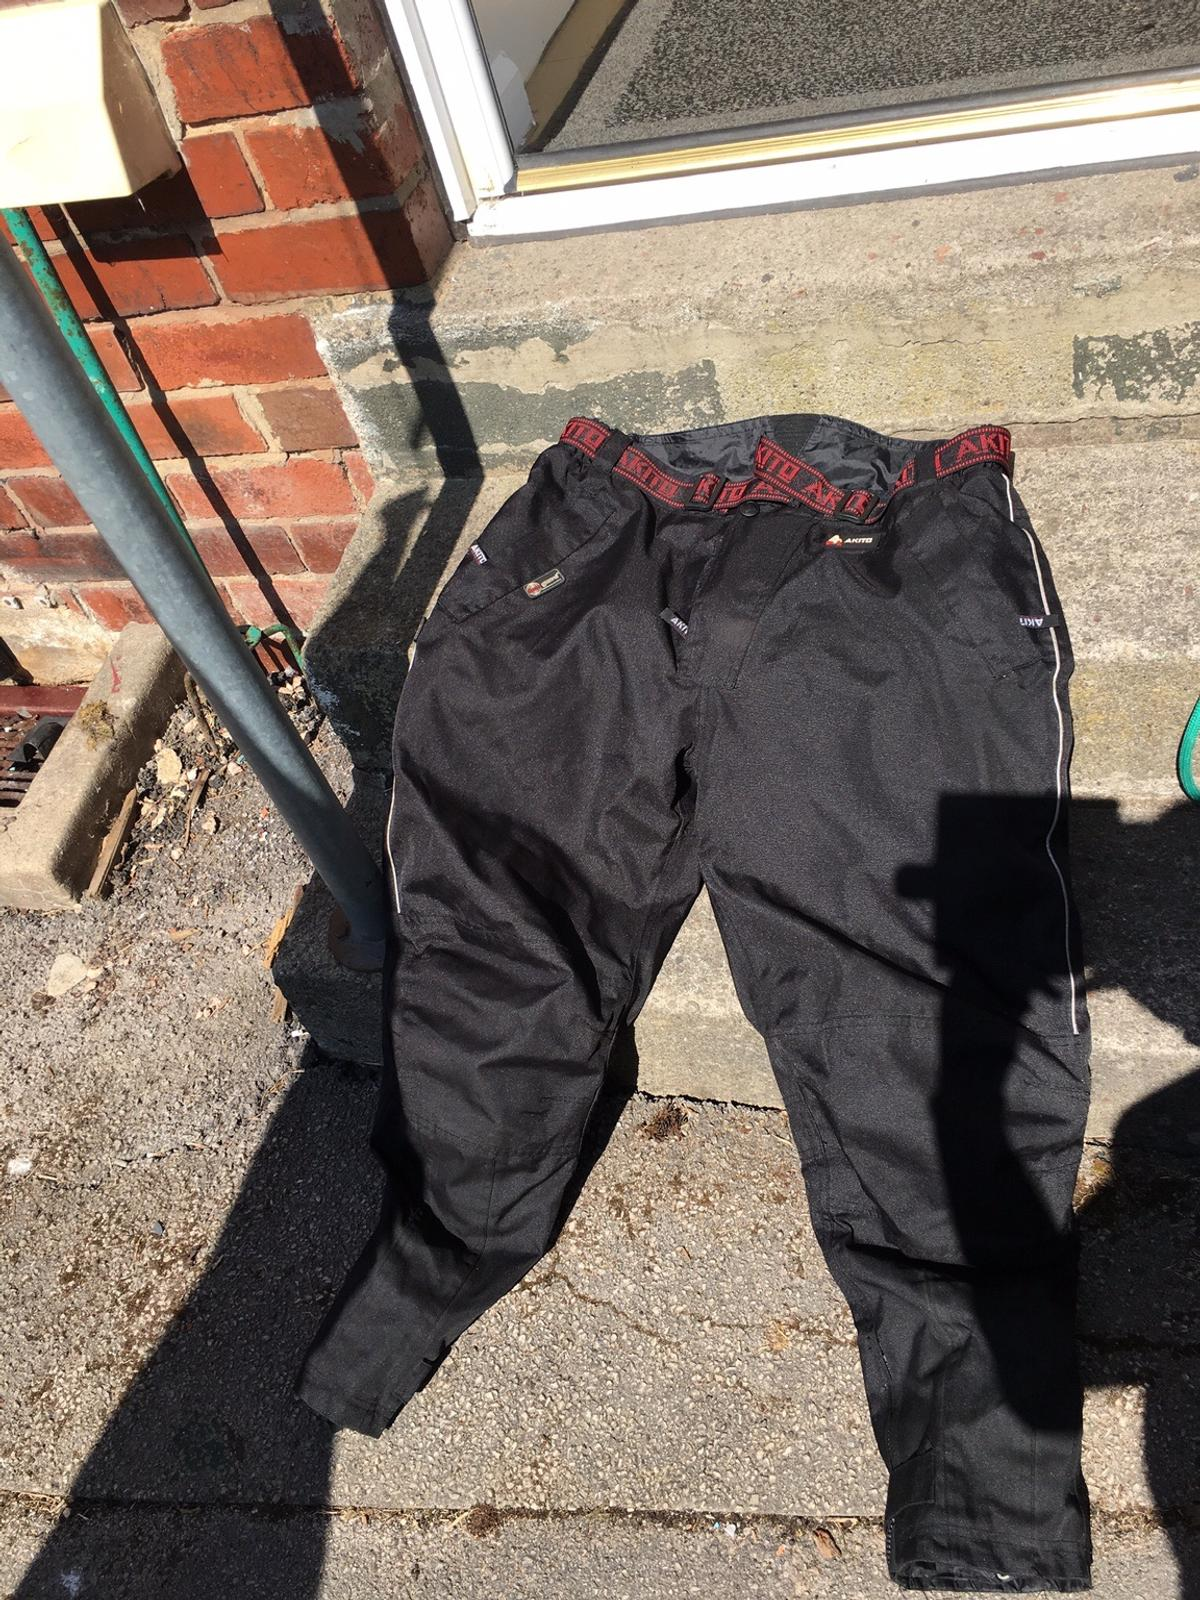 Showerproof motorbike jacket and trousers with extra lining  Can deliver in Leeds for a small fee to cover fuel